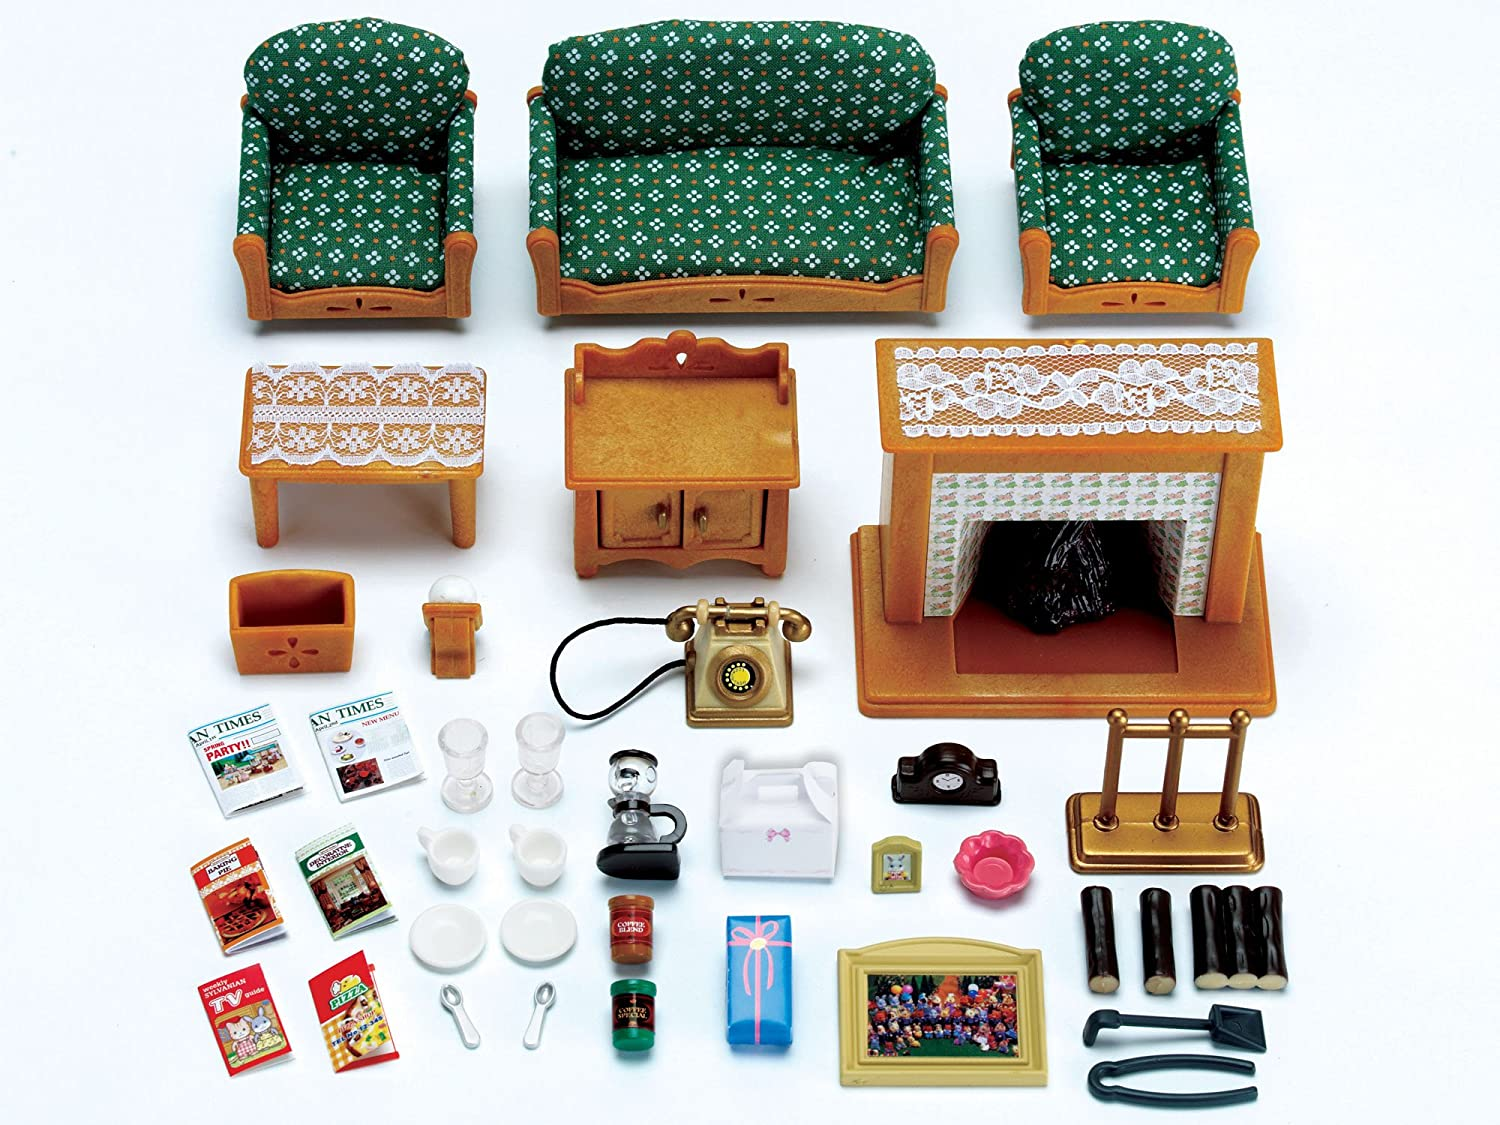 Charmant Sylvanian Families Deluxe Living Room Set: Sylvanian Families:  Amazon.co.uk: Toys U0026 Games